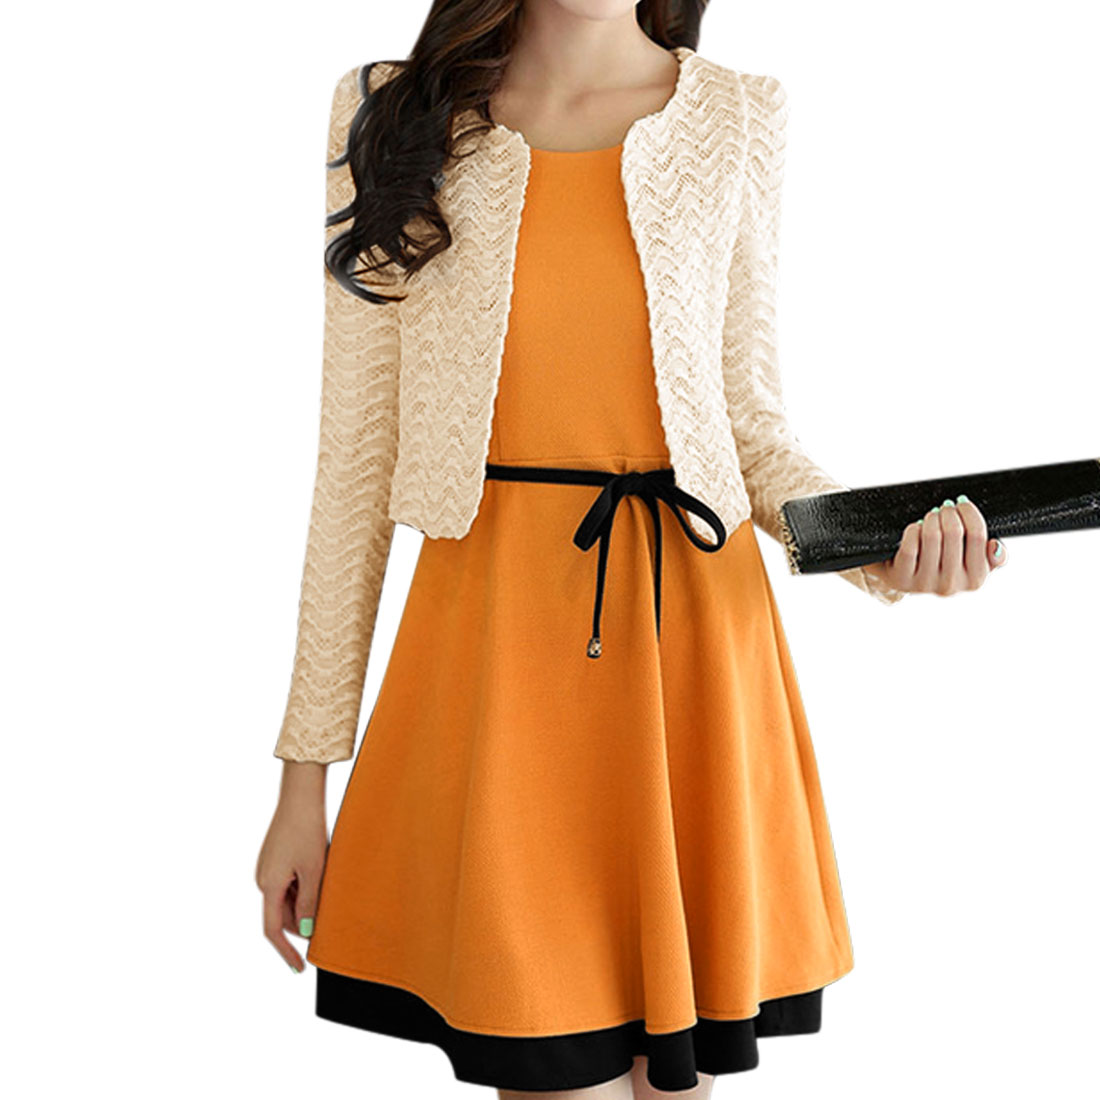 5289 Women Round Neck A-Line Dress w Waist String w Open Front Lace Jacket w Brooch(China (Mainland))